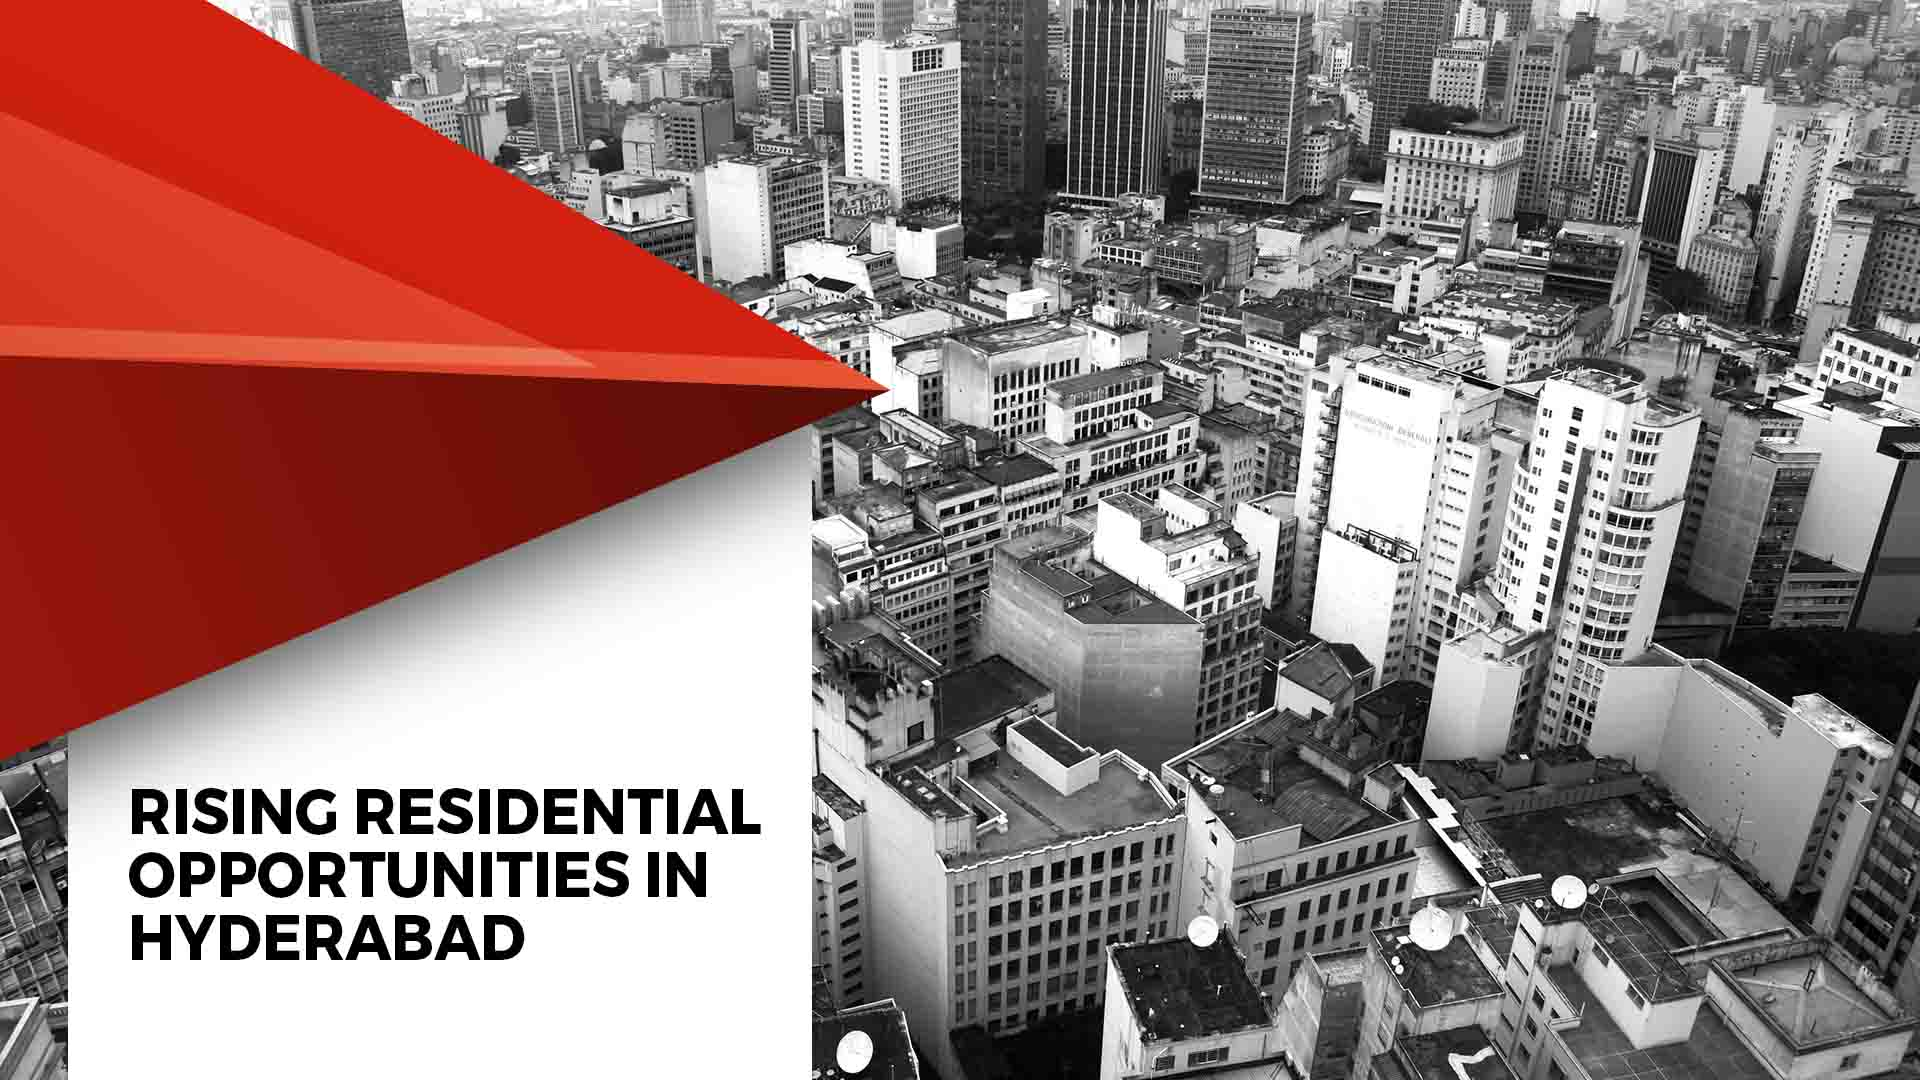 Hyderabad: The Bright Spot in Indian Real Estate